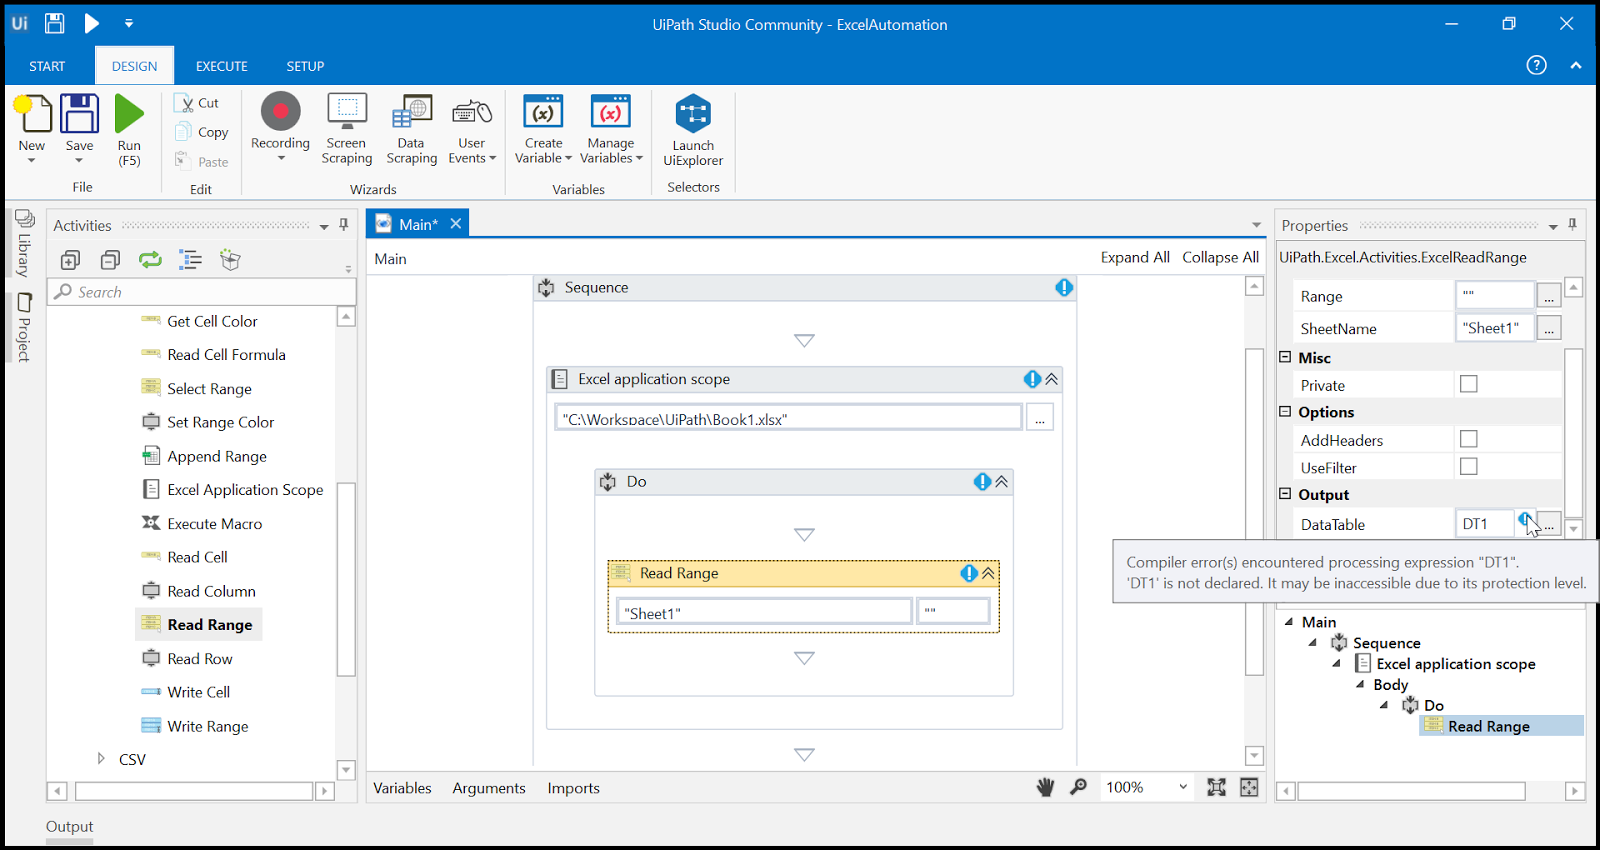 Robotic Process Automation: Excel Automation in UiPath